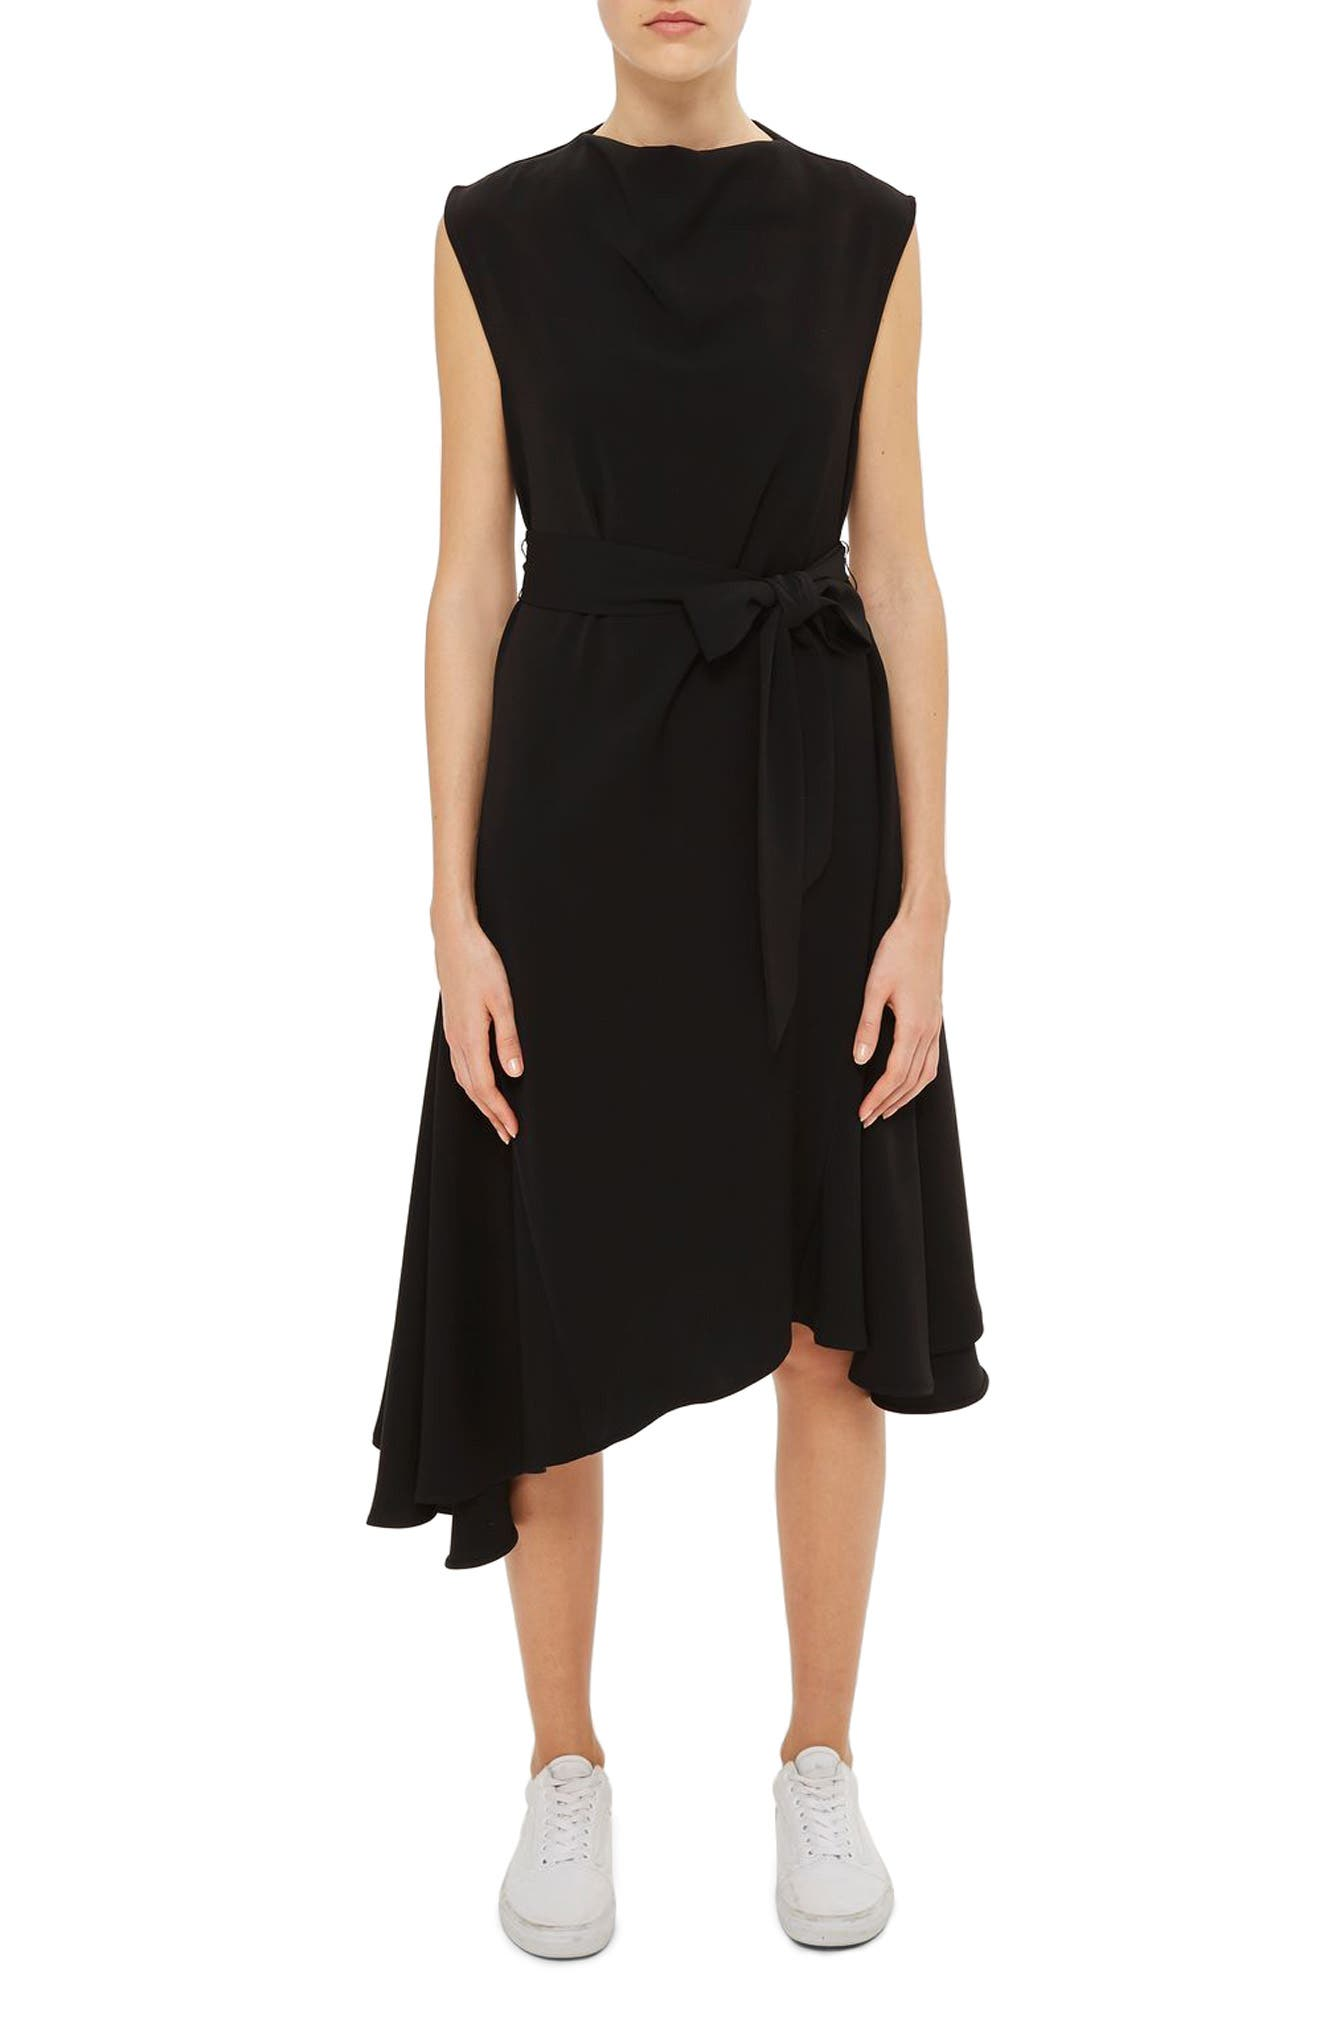 Topshop Boutique Belted Godet Midi Dress